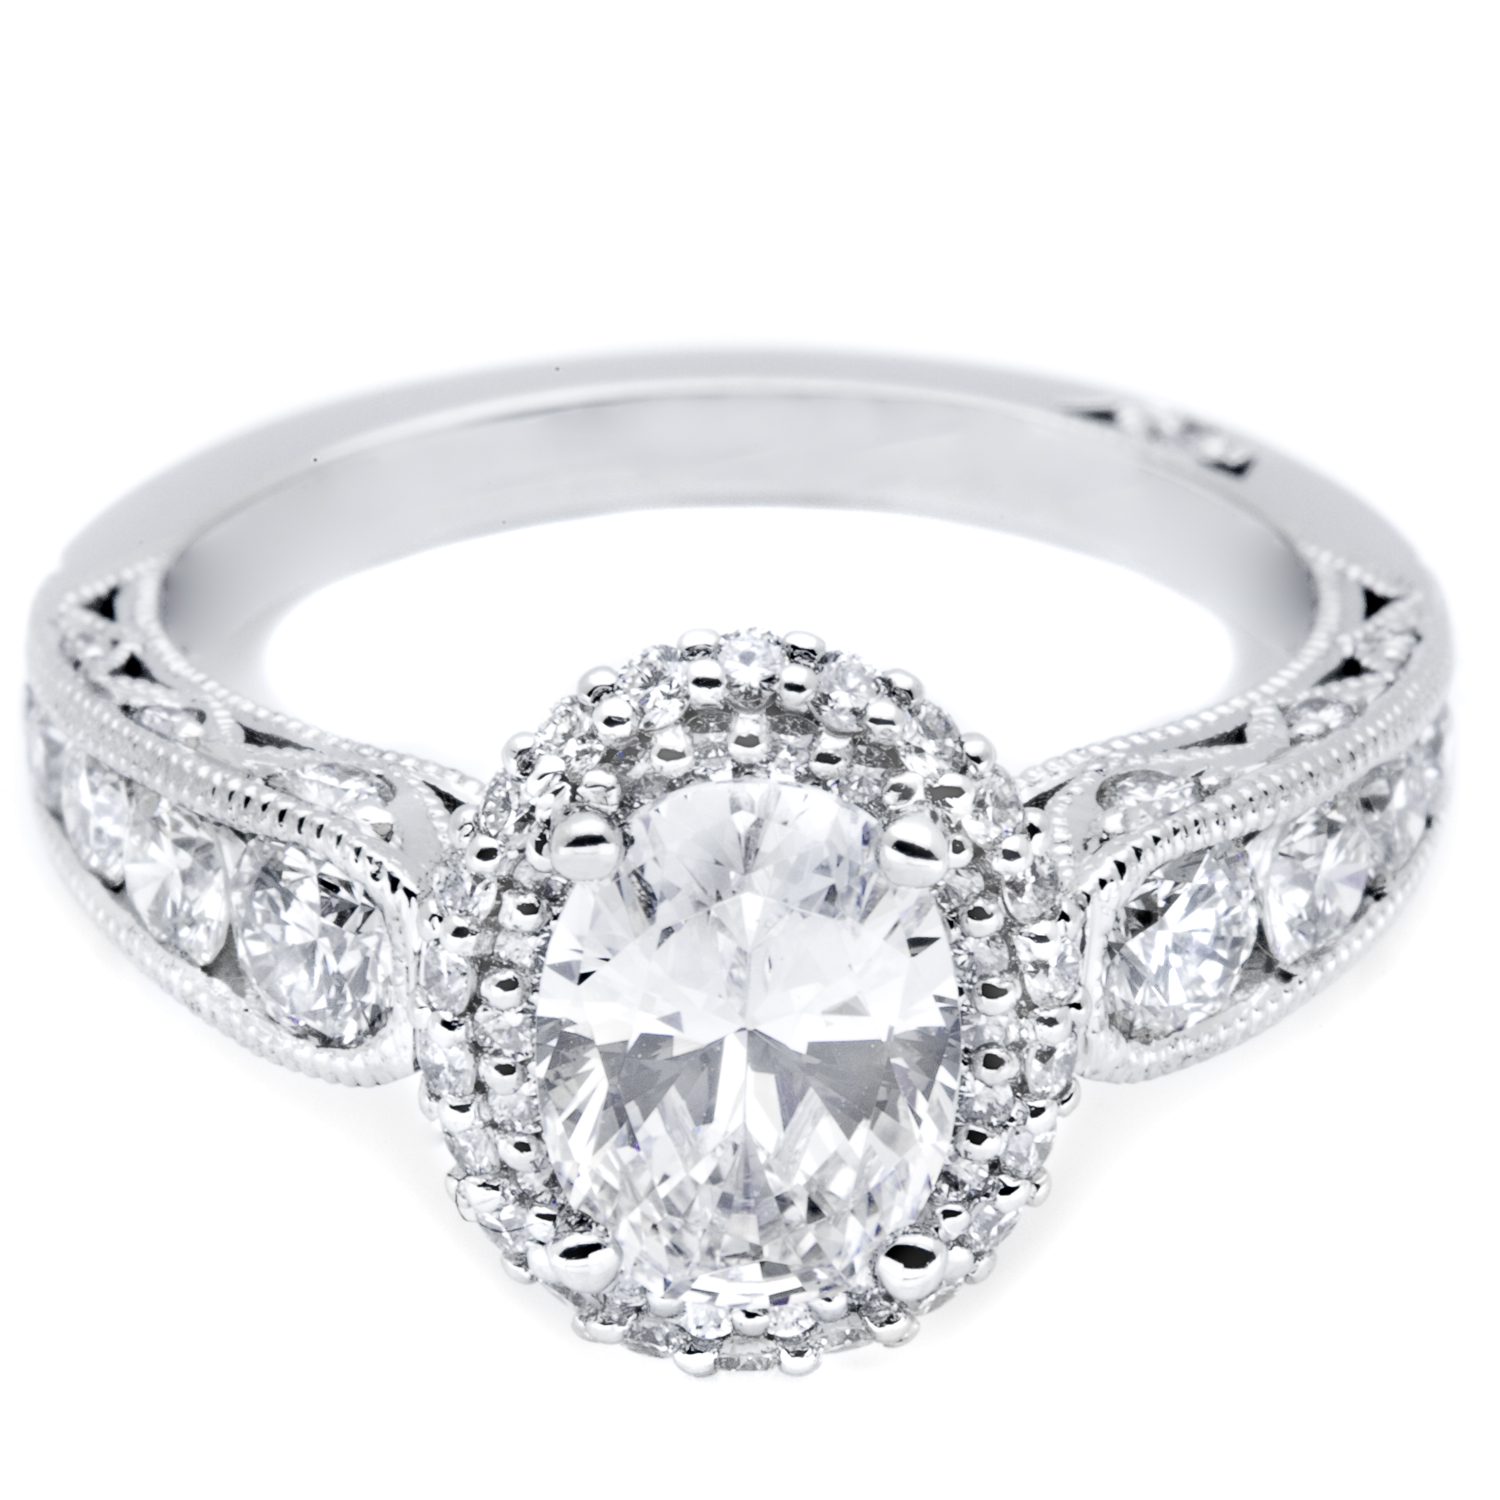 harry winston style engagement rings | Wedding Ideas and ...